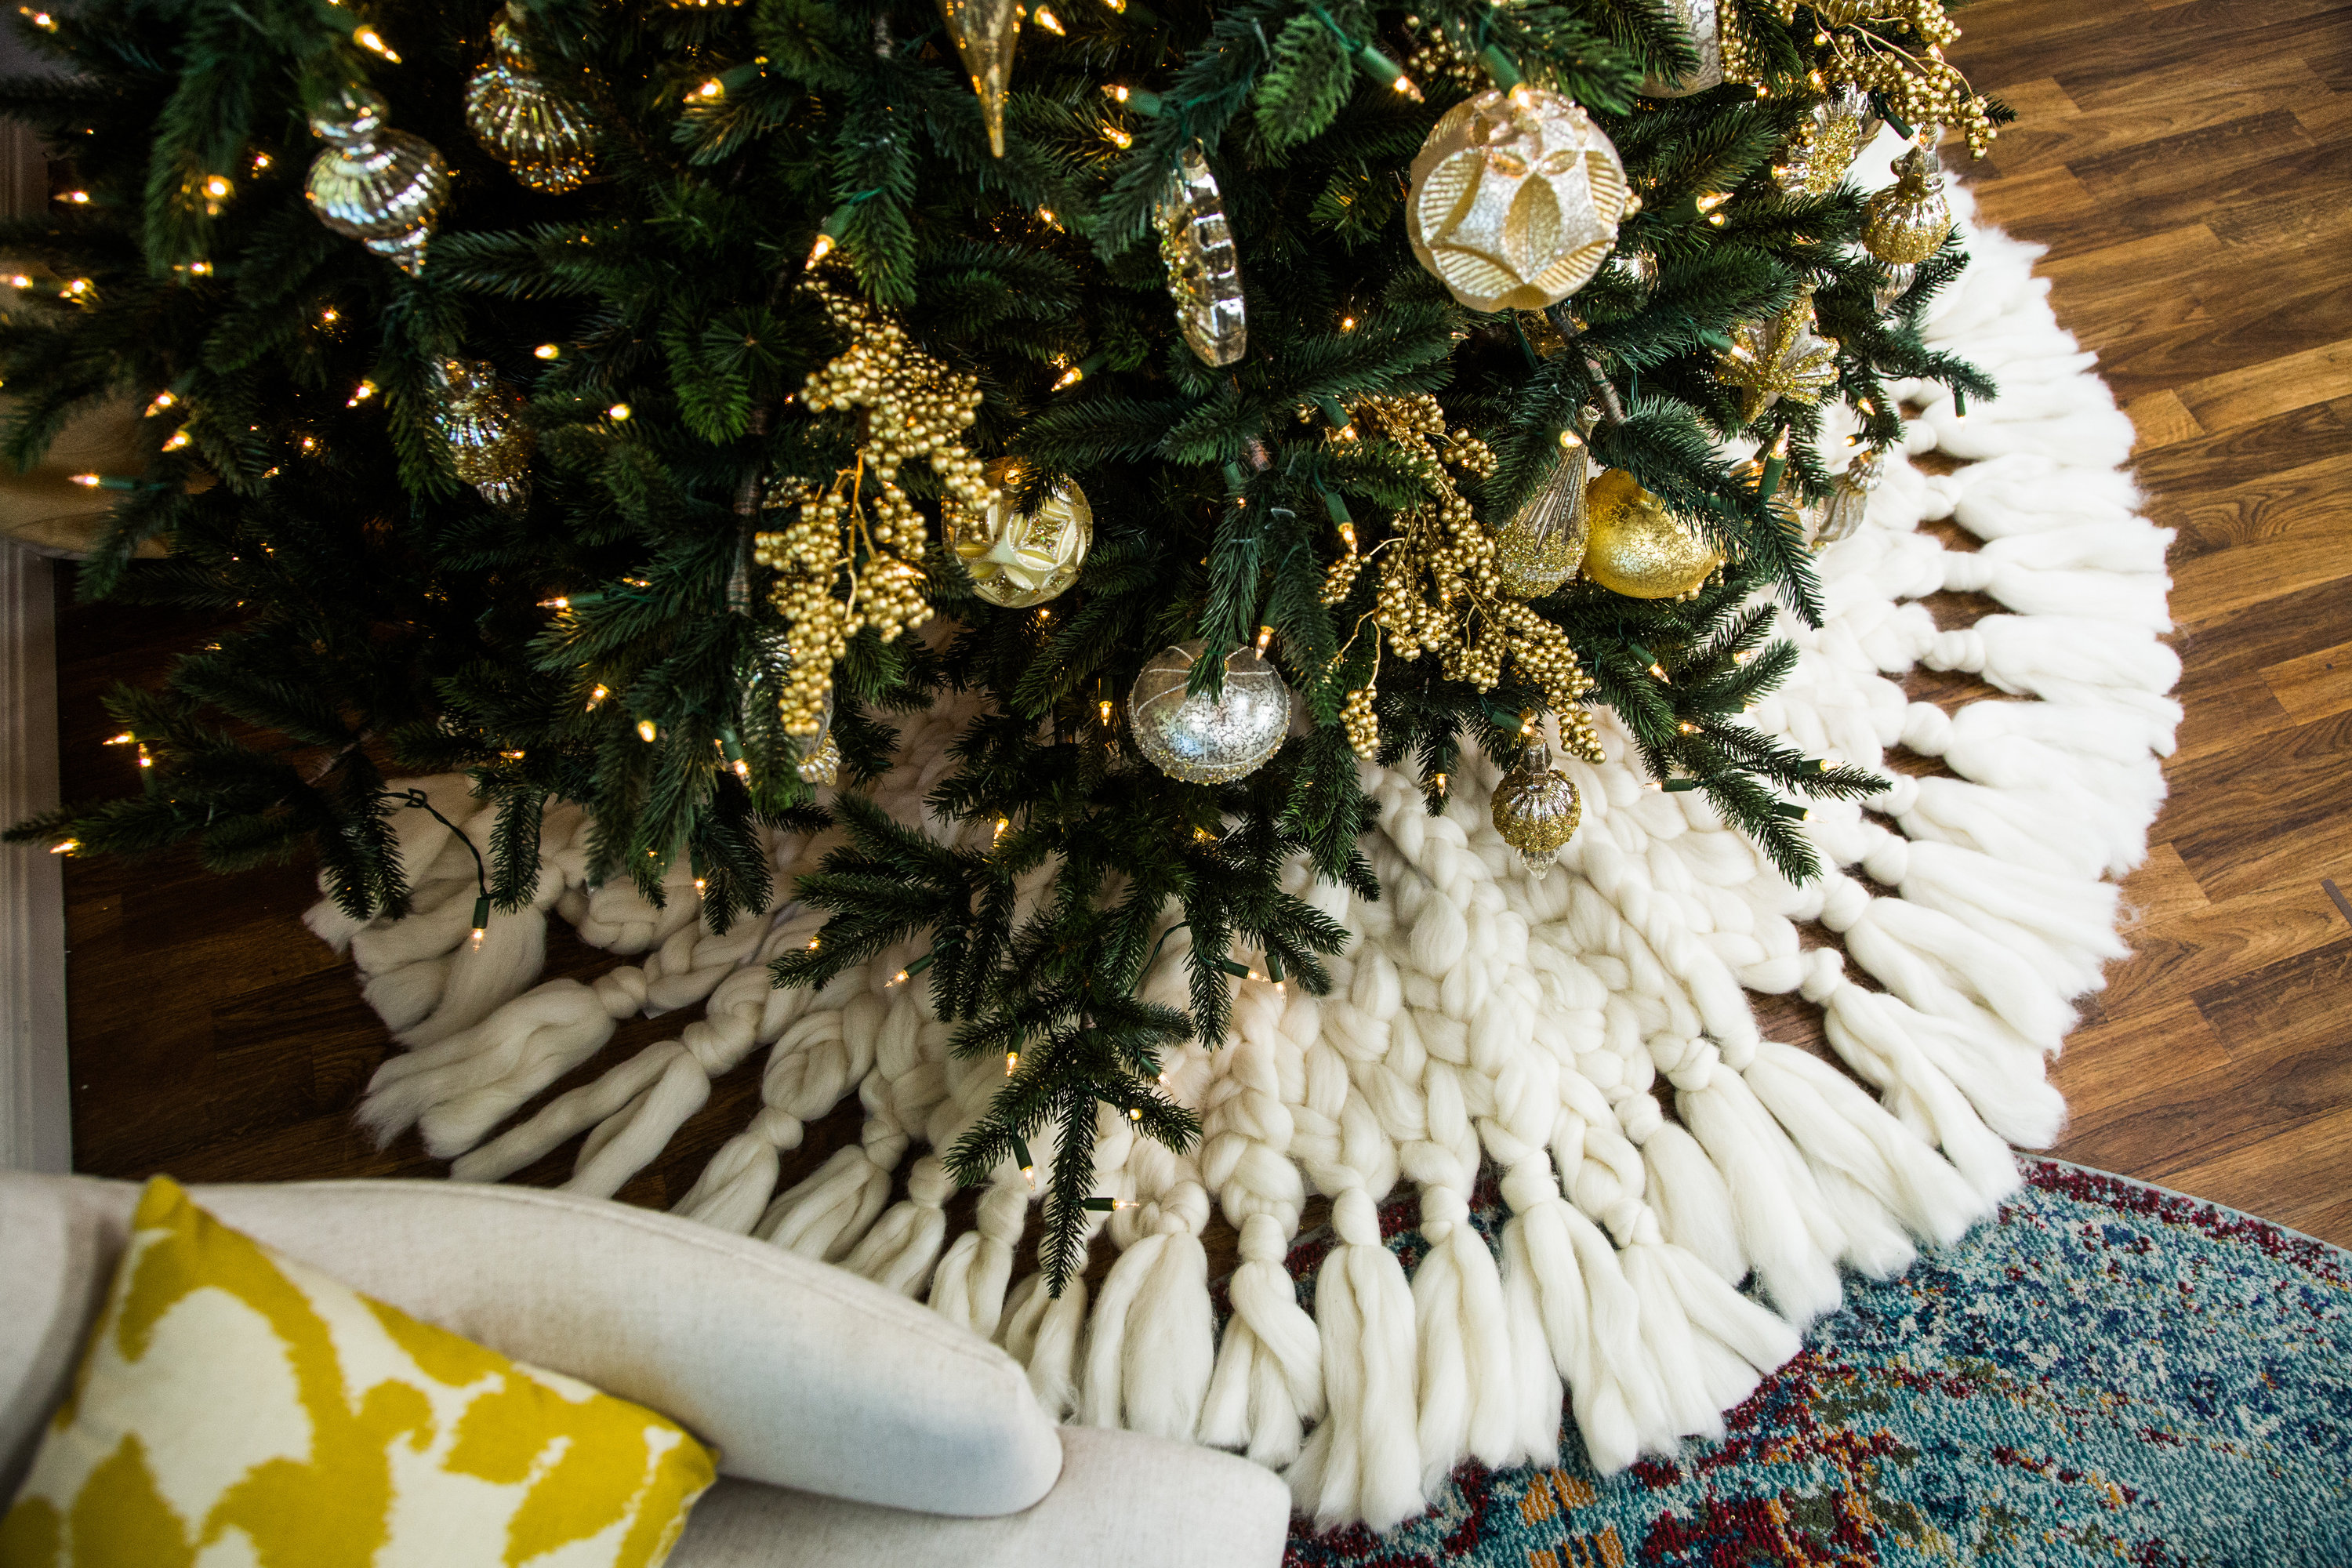 How To - DIY Knit Christmas Tree Skirt | Hallmark Channel